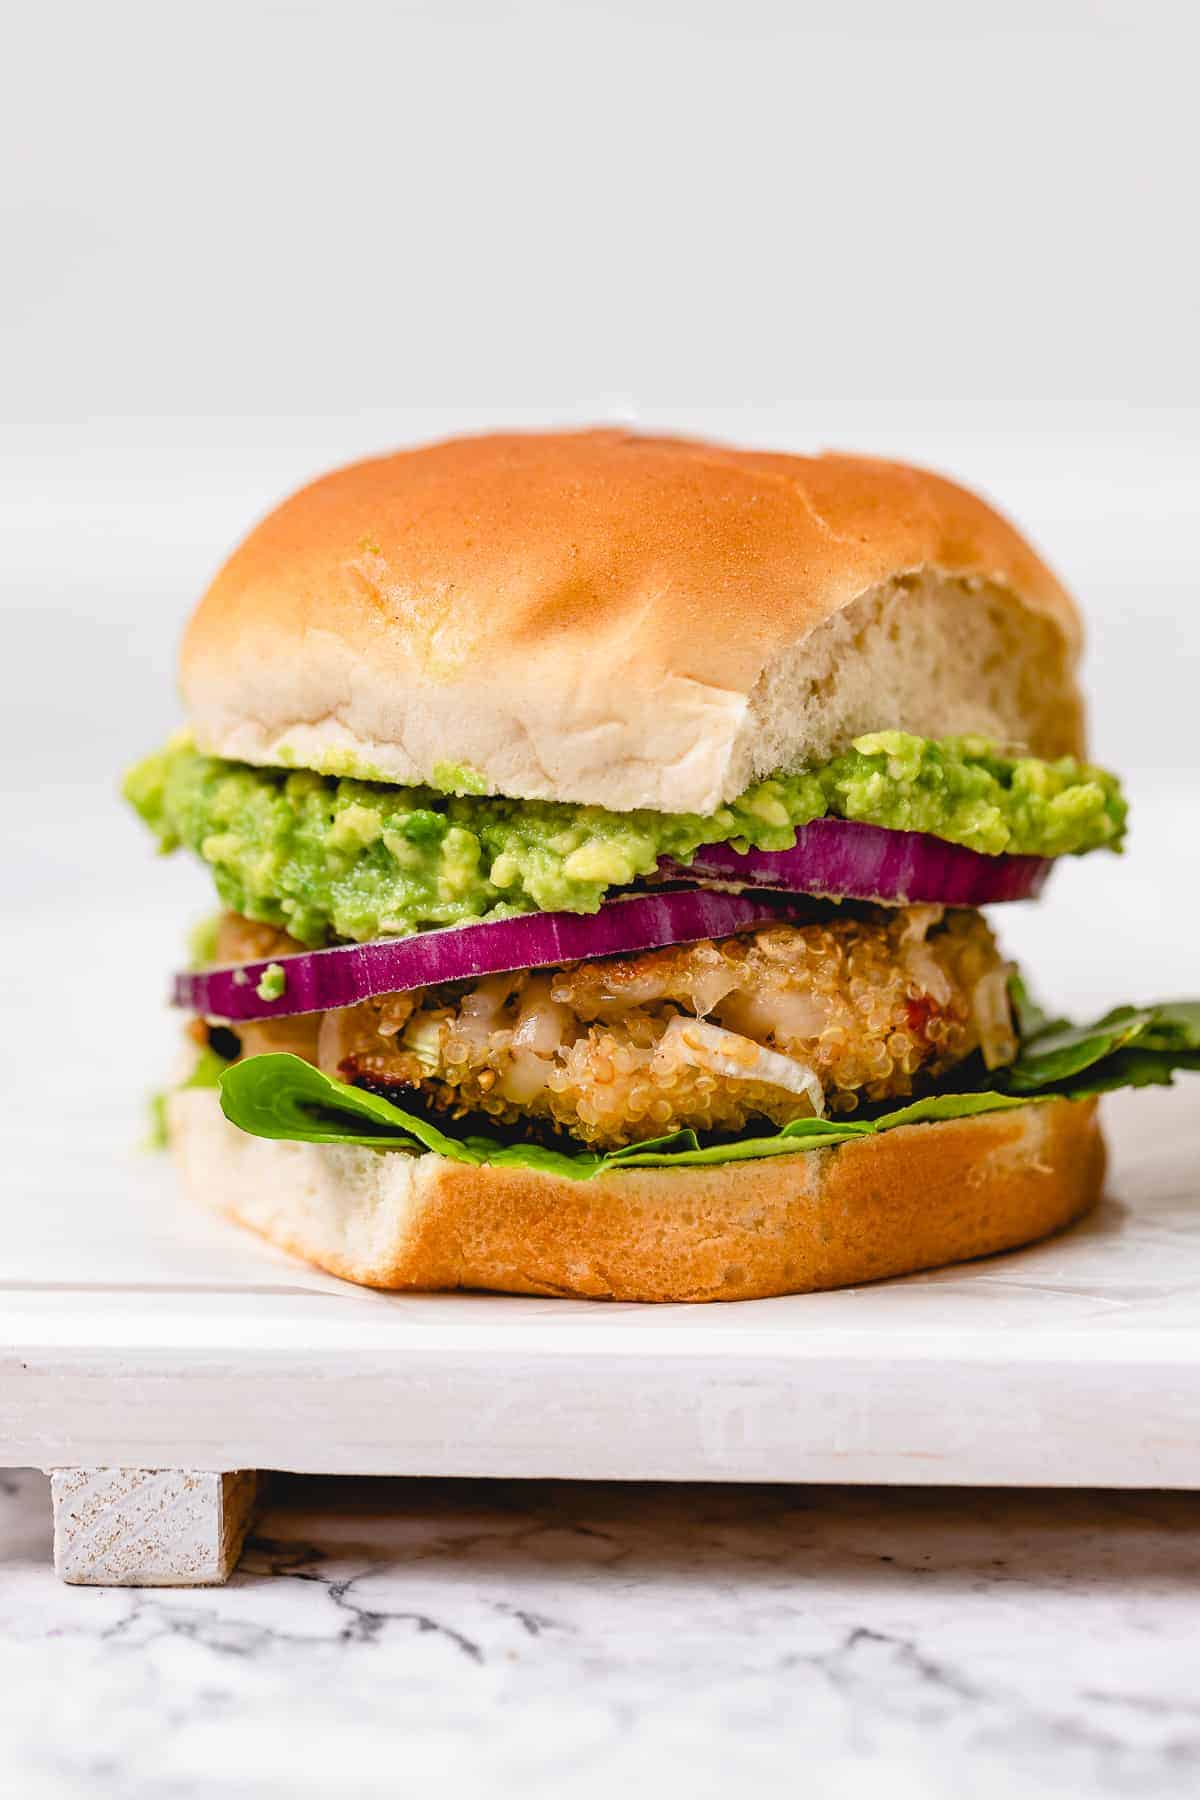 Quinoa veggie burger with lettuce, red onion, and avocado on a white bun on a board